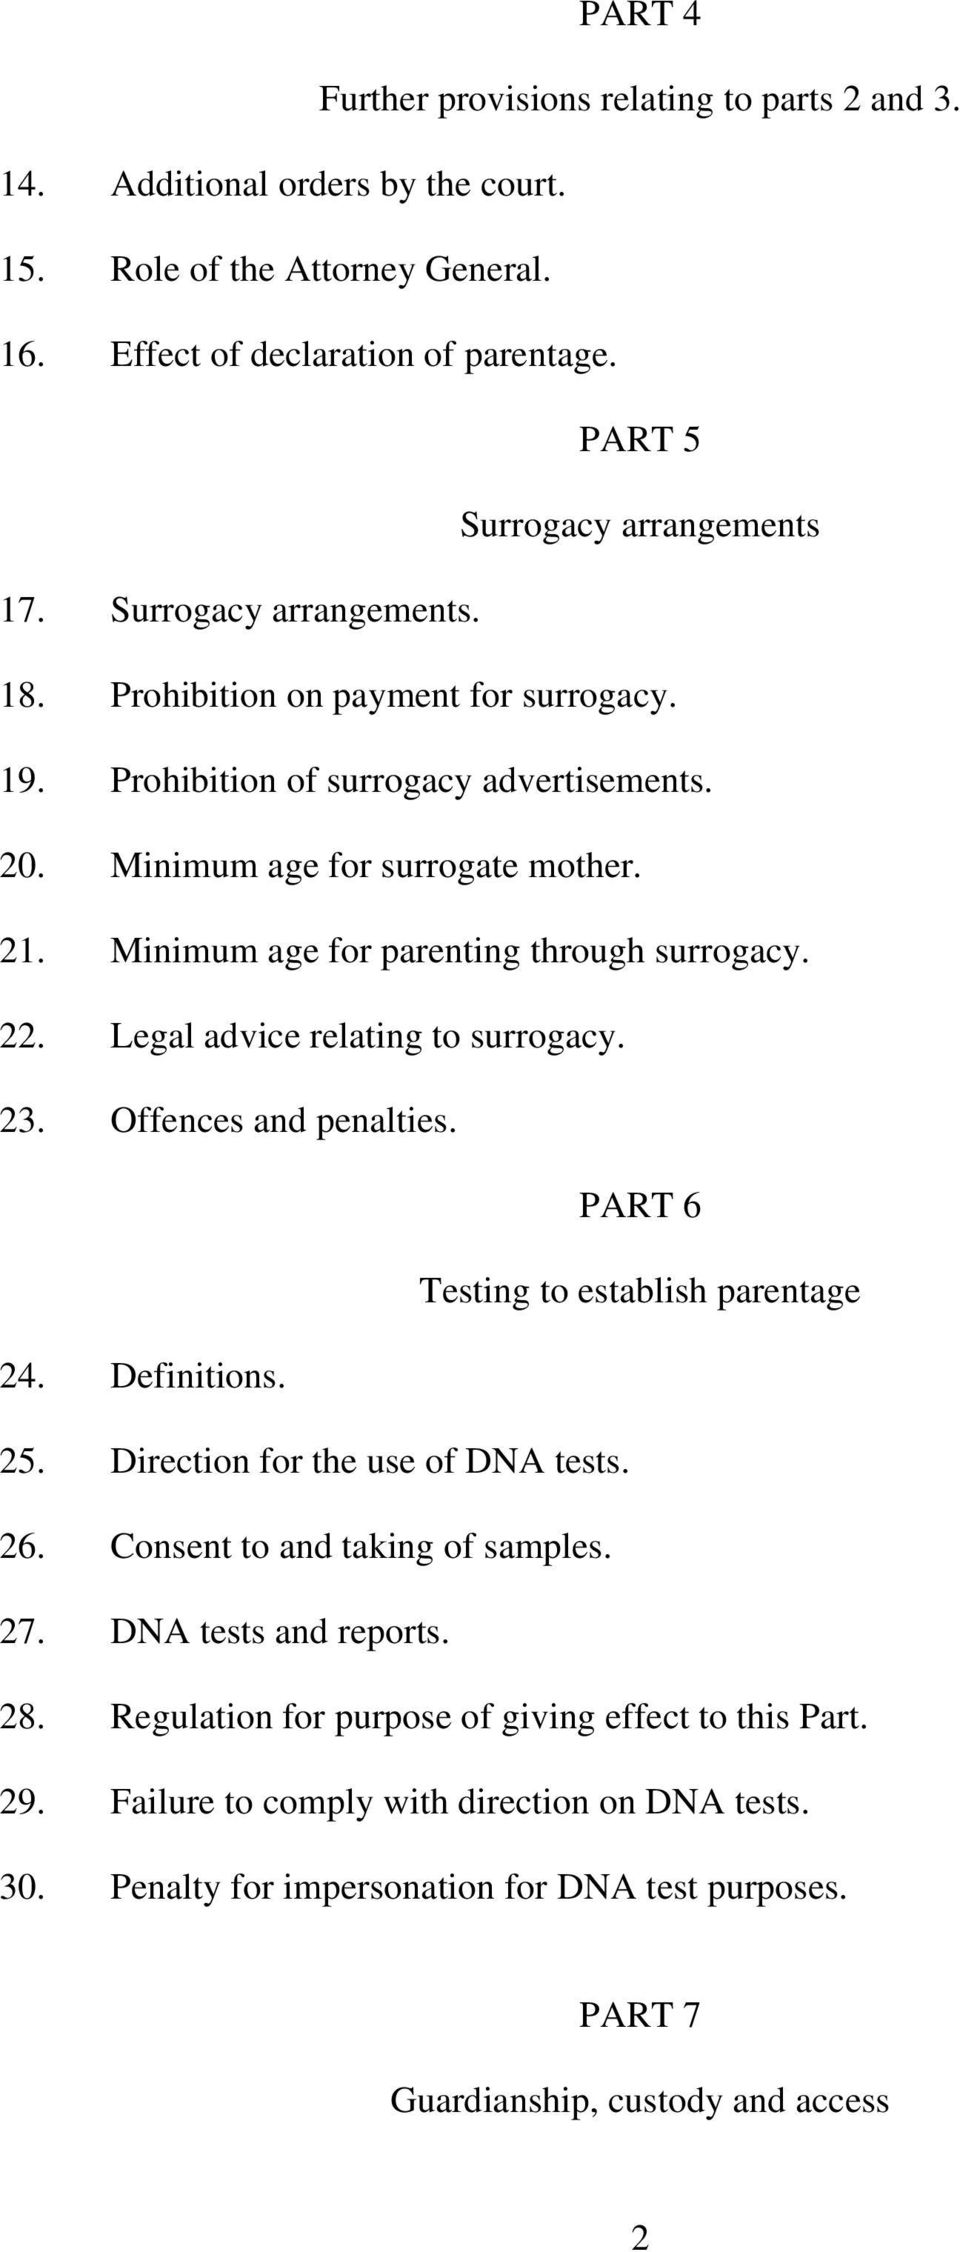 22. Legal advice relating to surrogacy. 23. Offences and penalties. PART 6 Testing to establish parentage 24. Definitions. 25. Direction for the use of DNA tests. 26. Consent to and taking of samples.